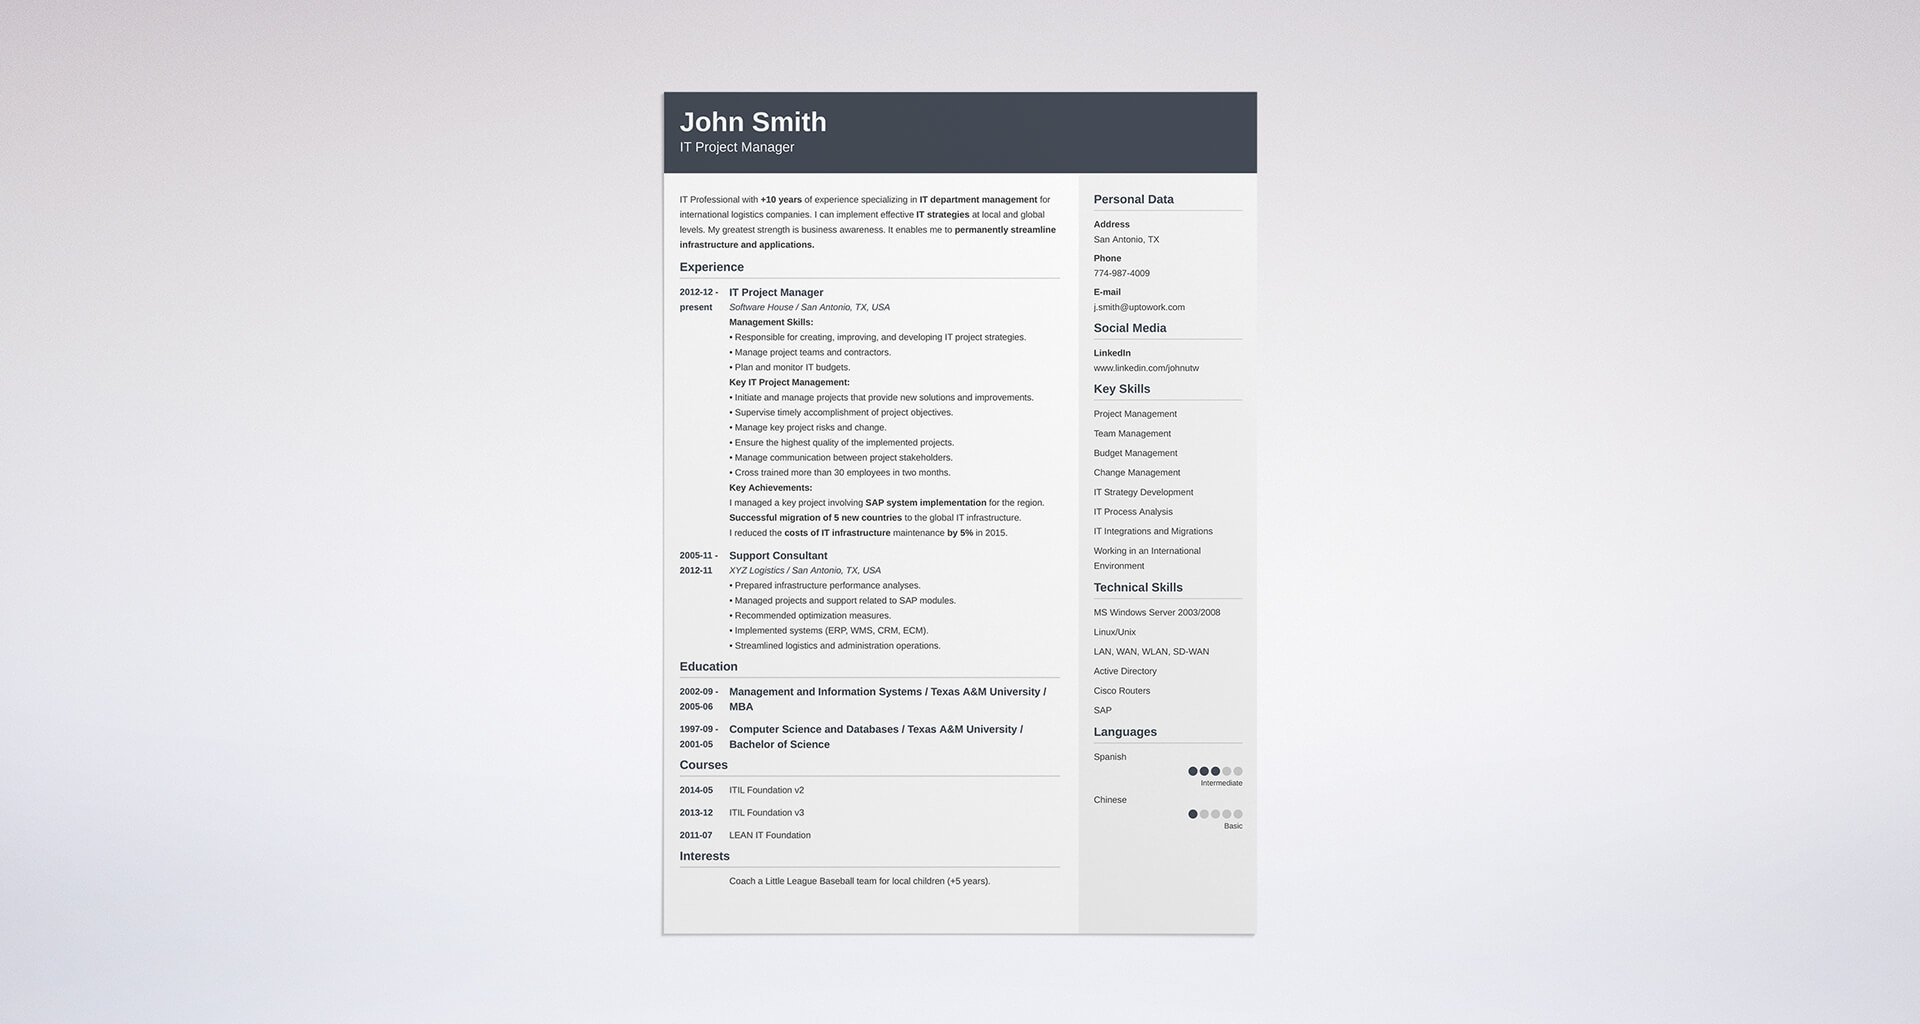 How To Make A Resume A StepbyStep Guide Examples - Stand out resume templates free